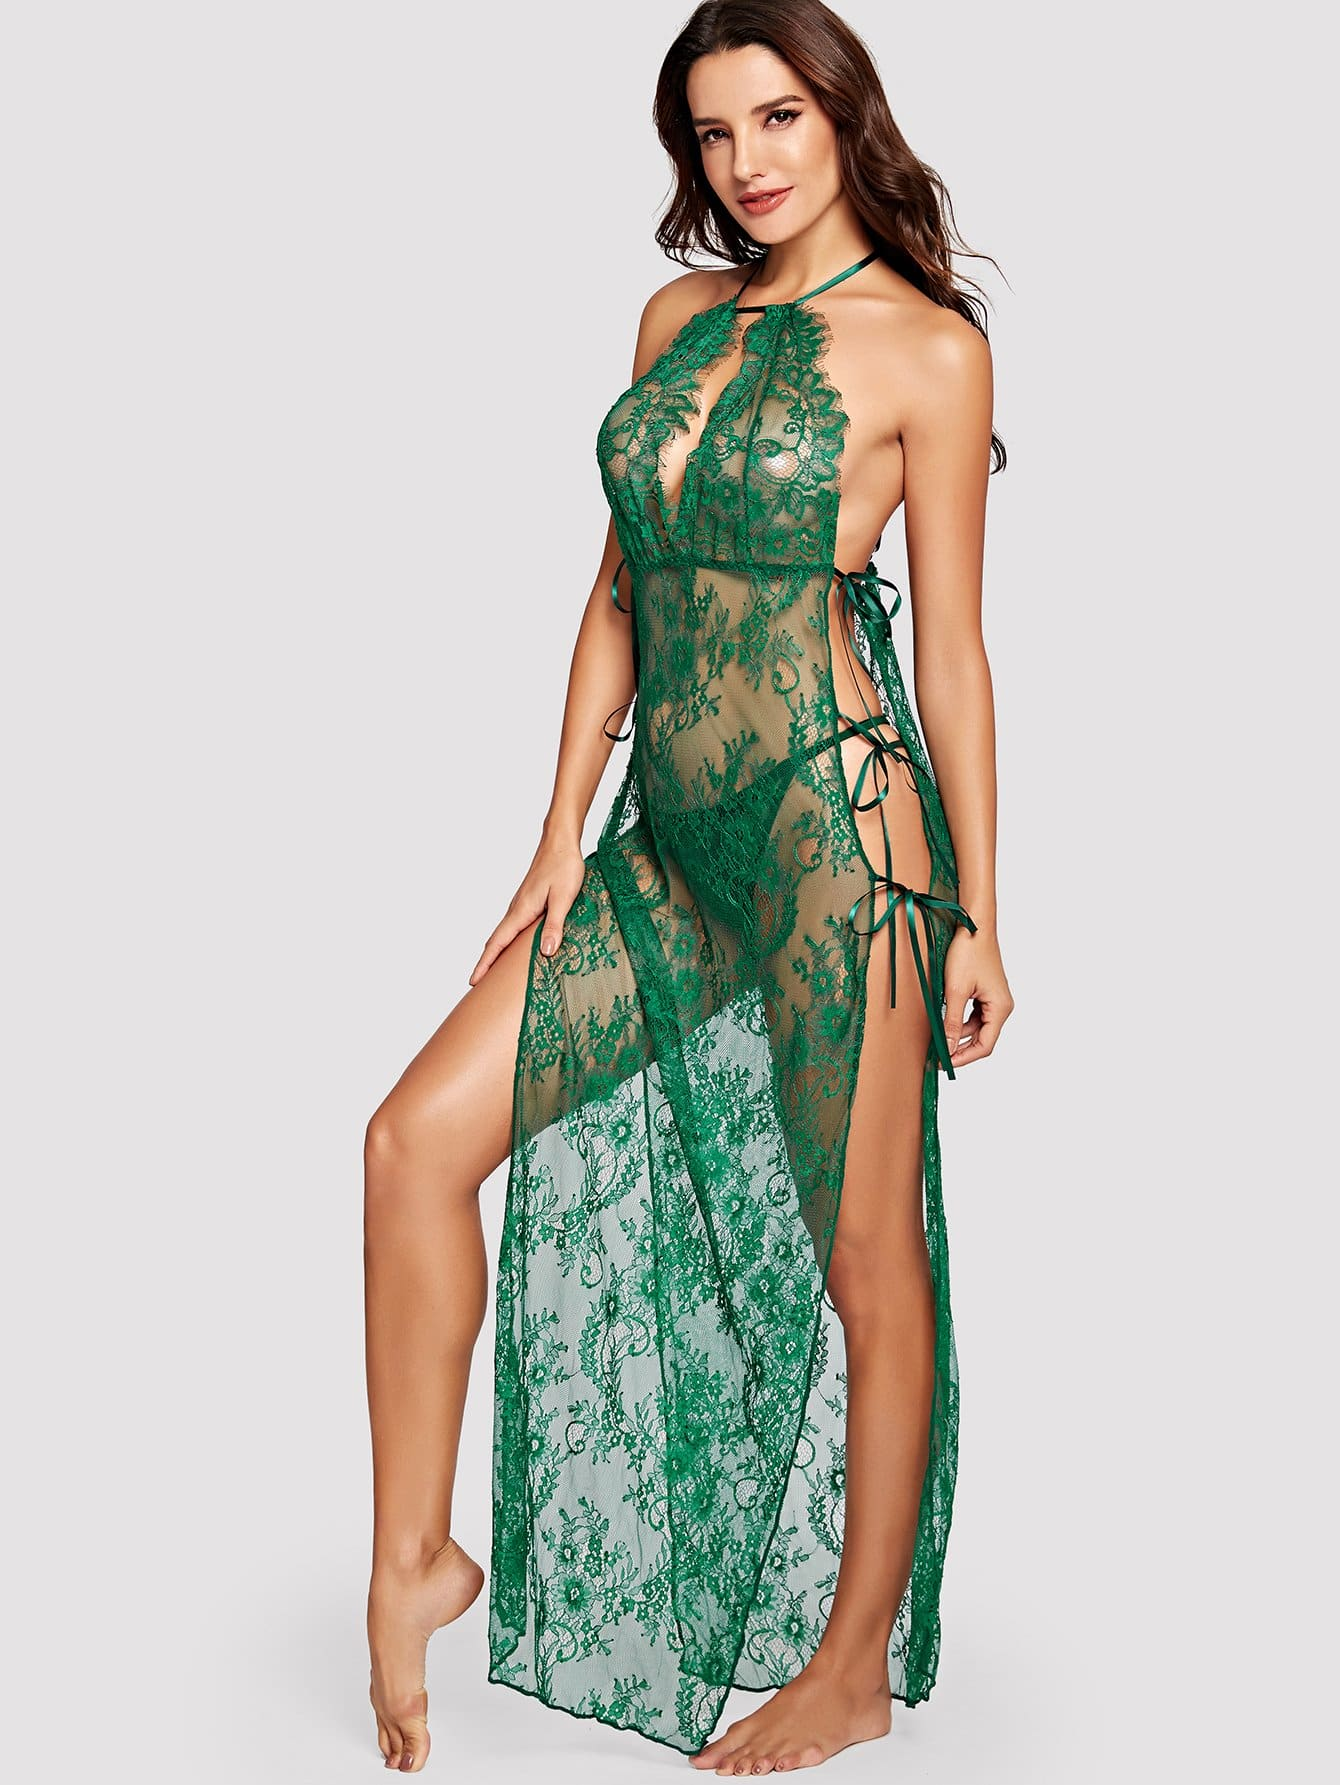 High Split Floral Lace Dress With Thong